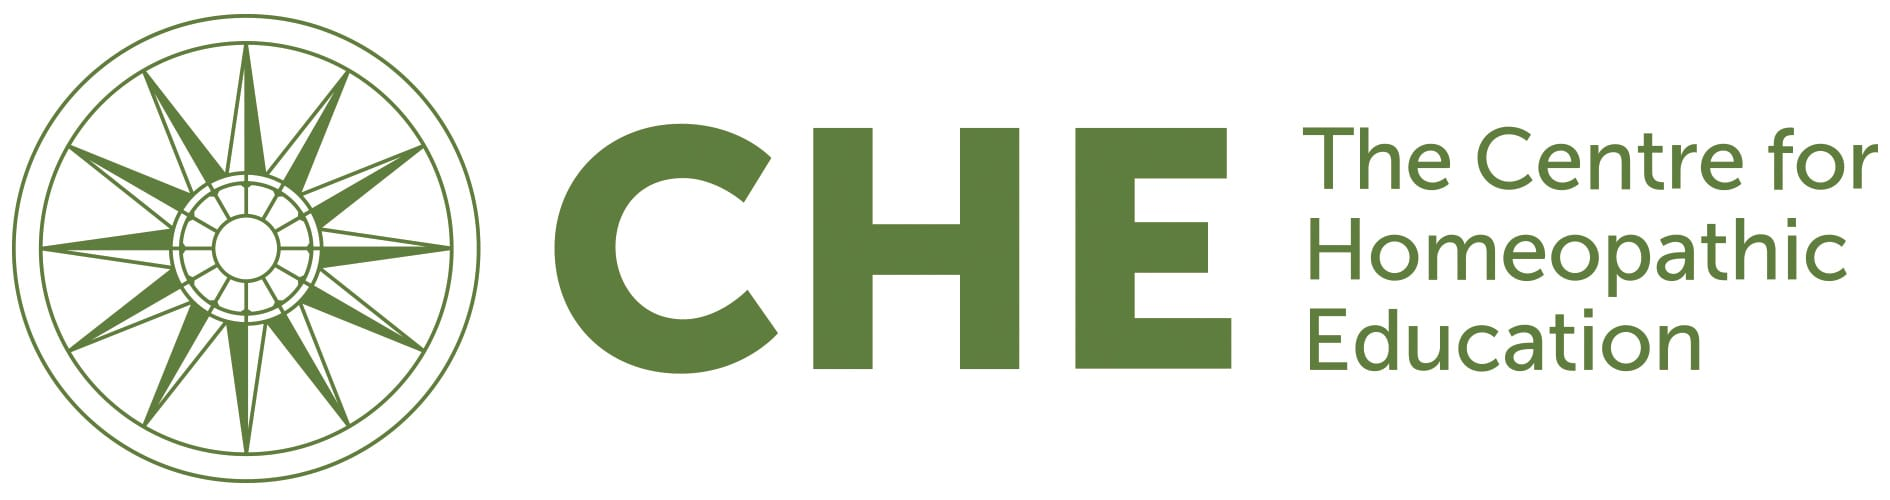 CHE, The Center for Homeopathic Education